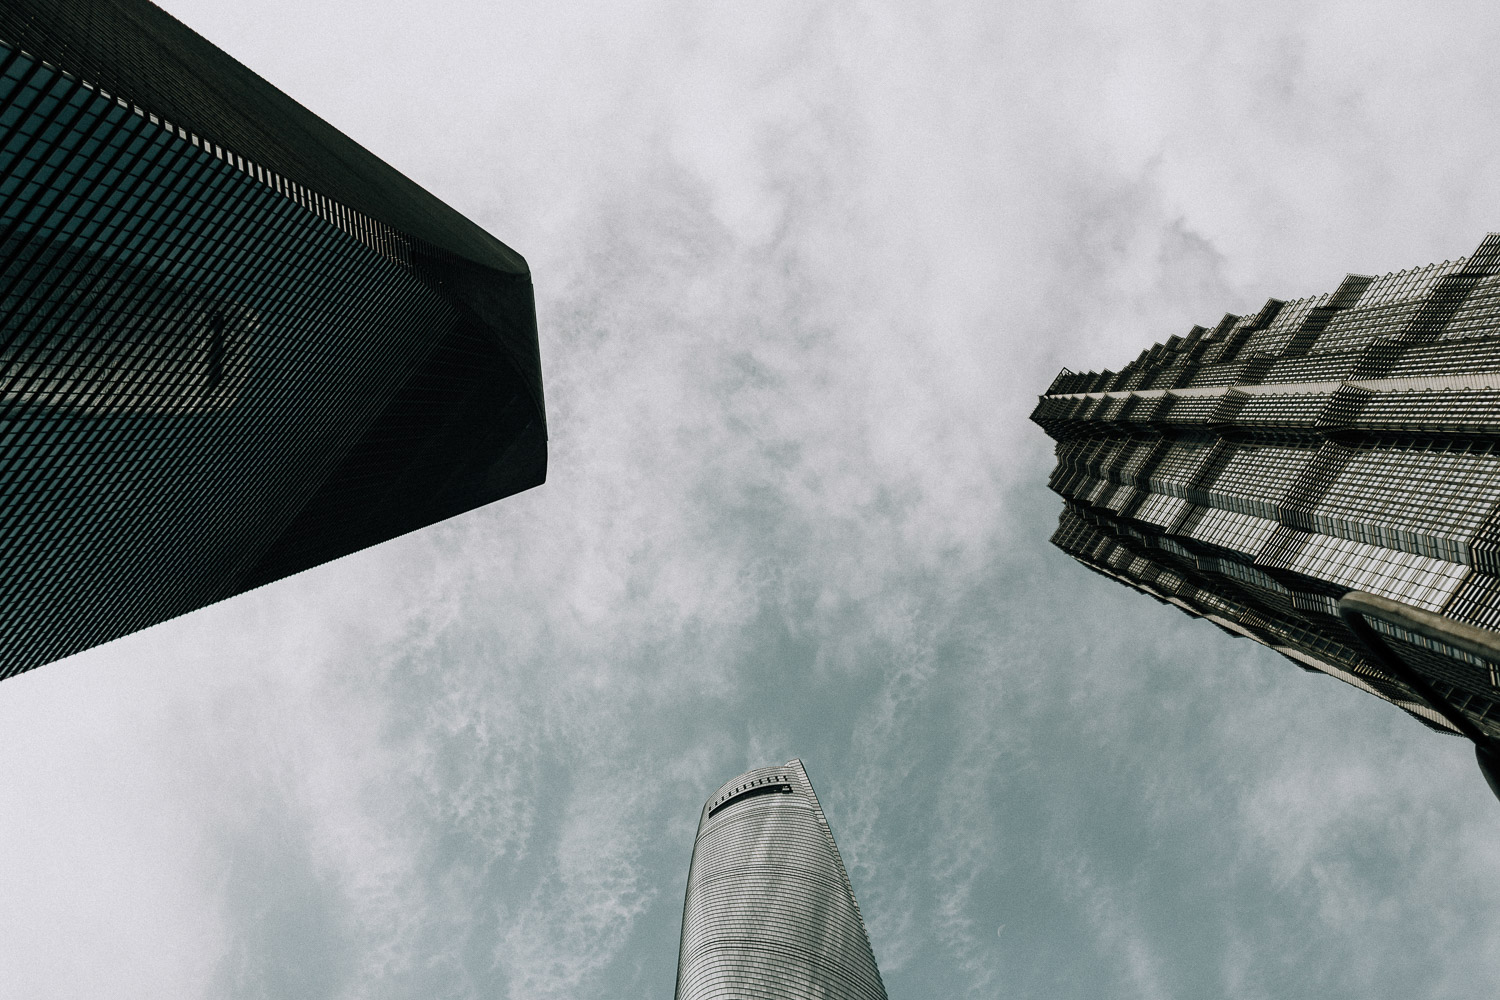 Image of tree tall buildings